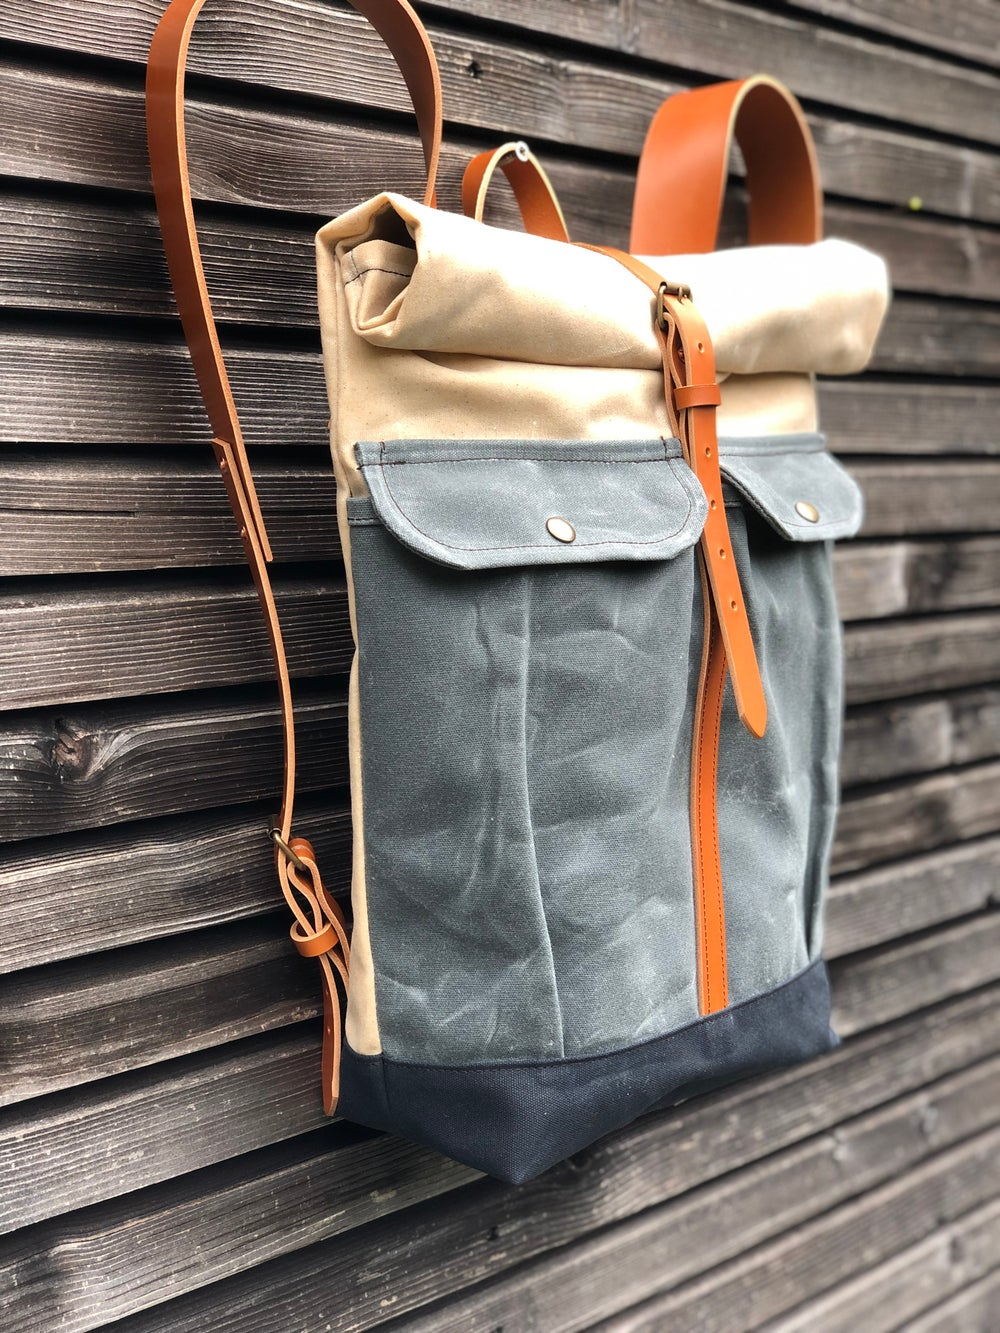 Image of Waxed canvas rucksack with roll to close top and vegetable tanned leather shoulder straps